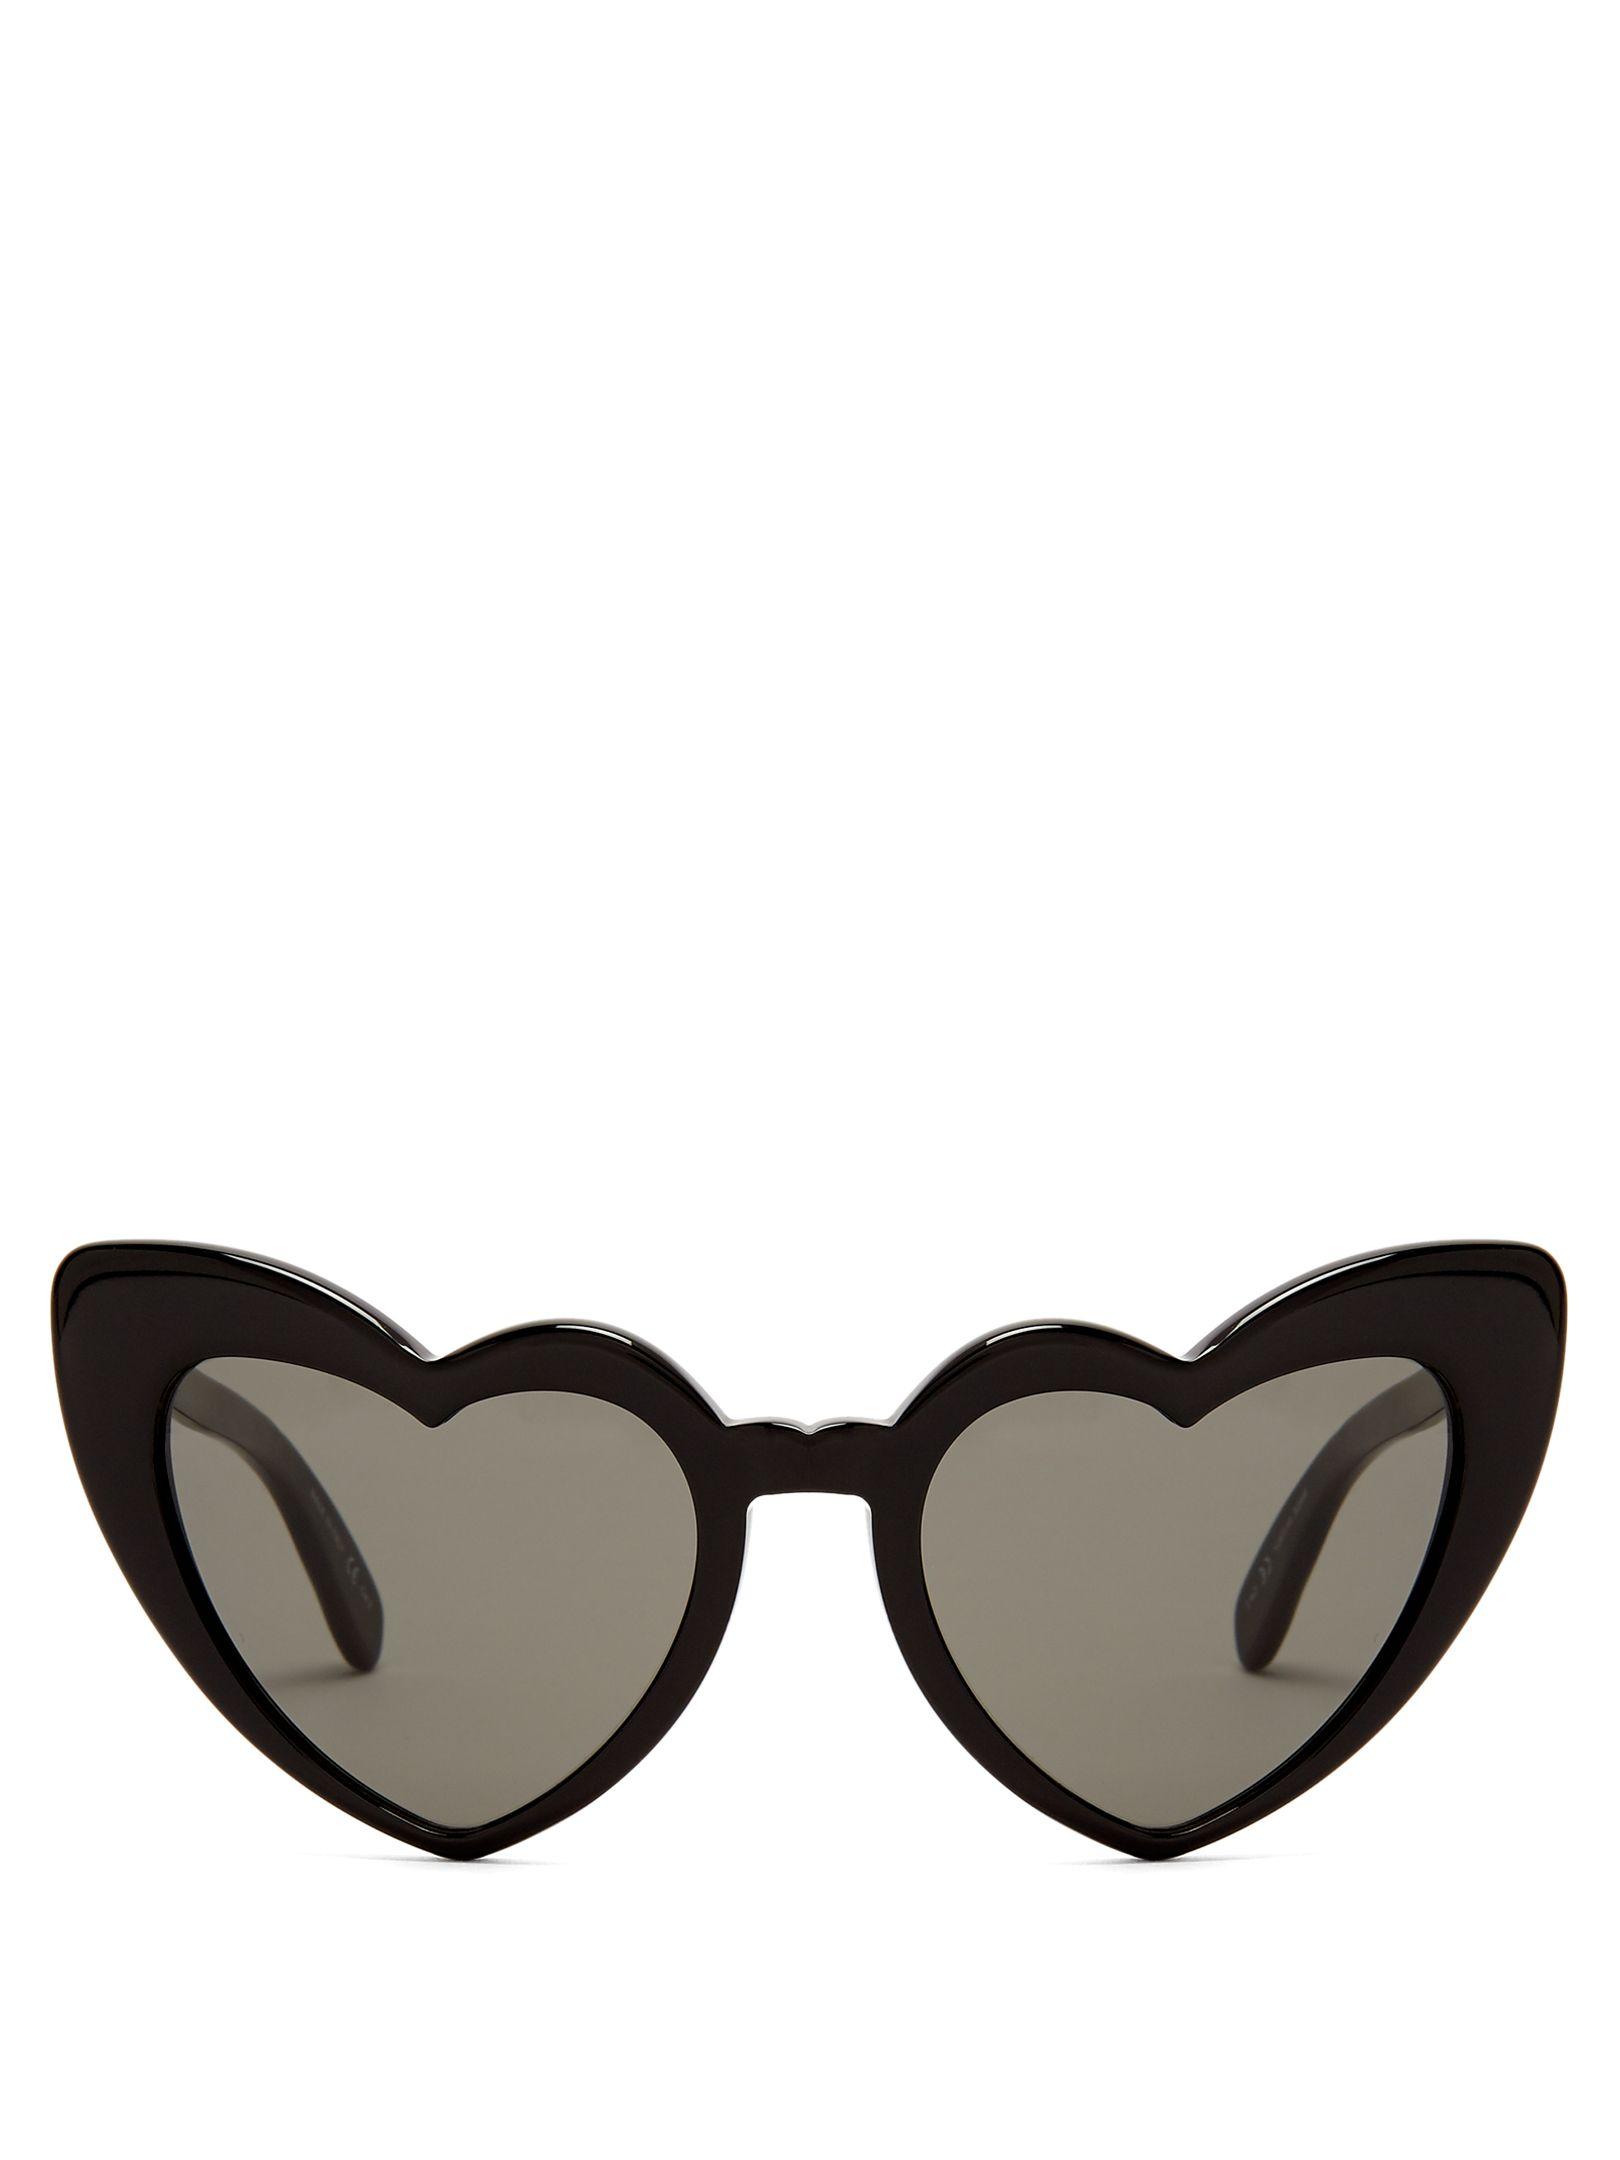 c52f1fea83c62 Saint Laurent Loulou heart-frame acetate sunglasses